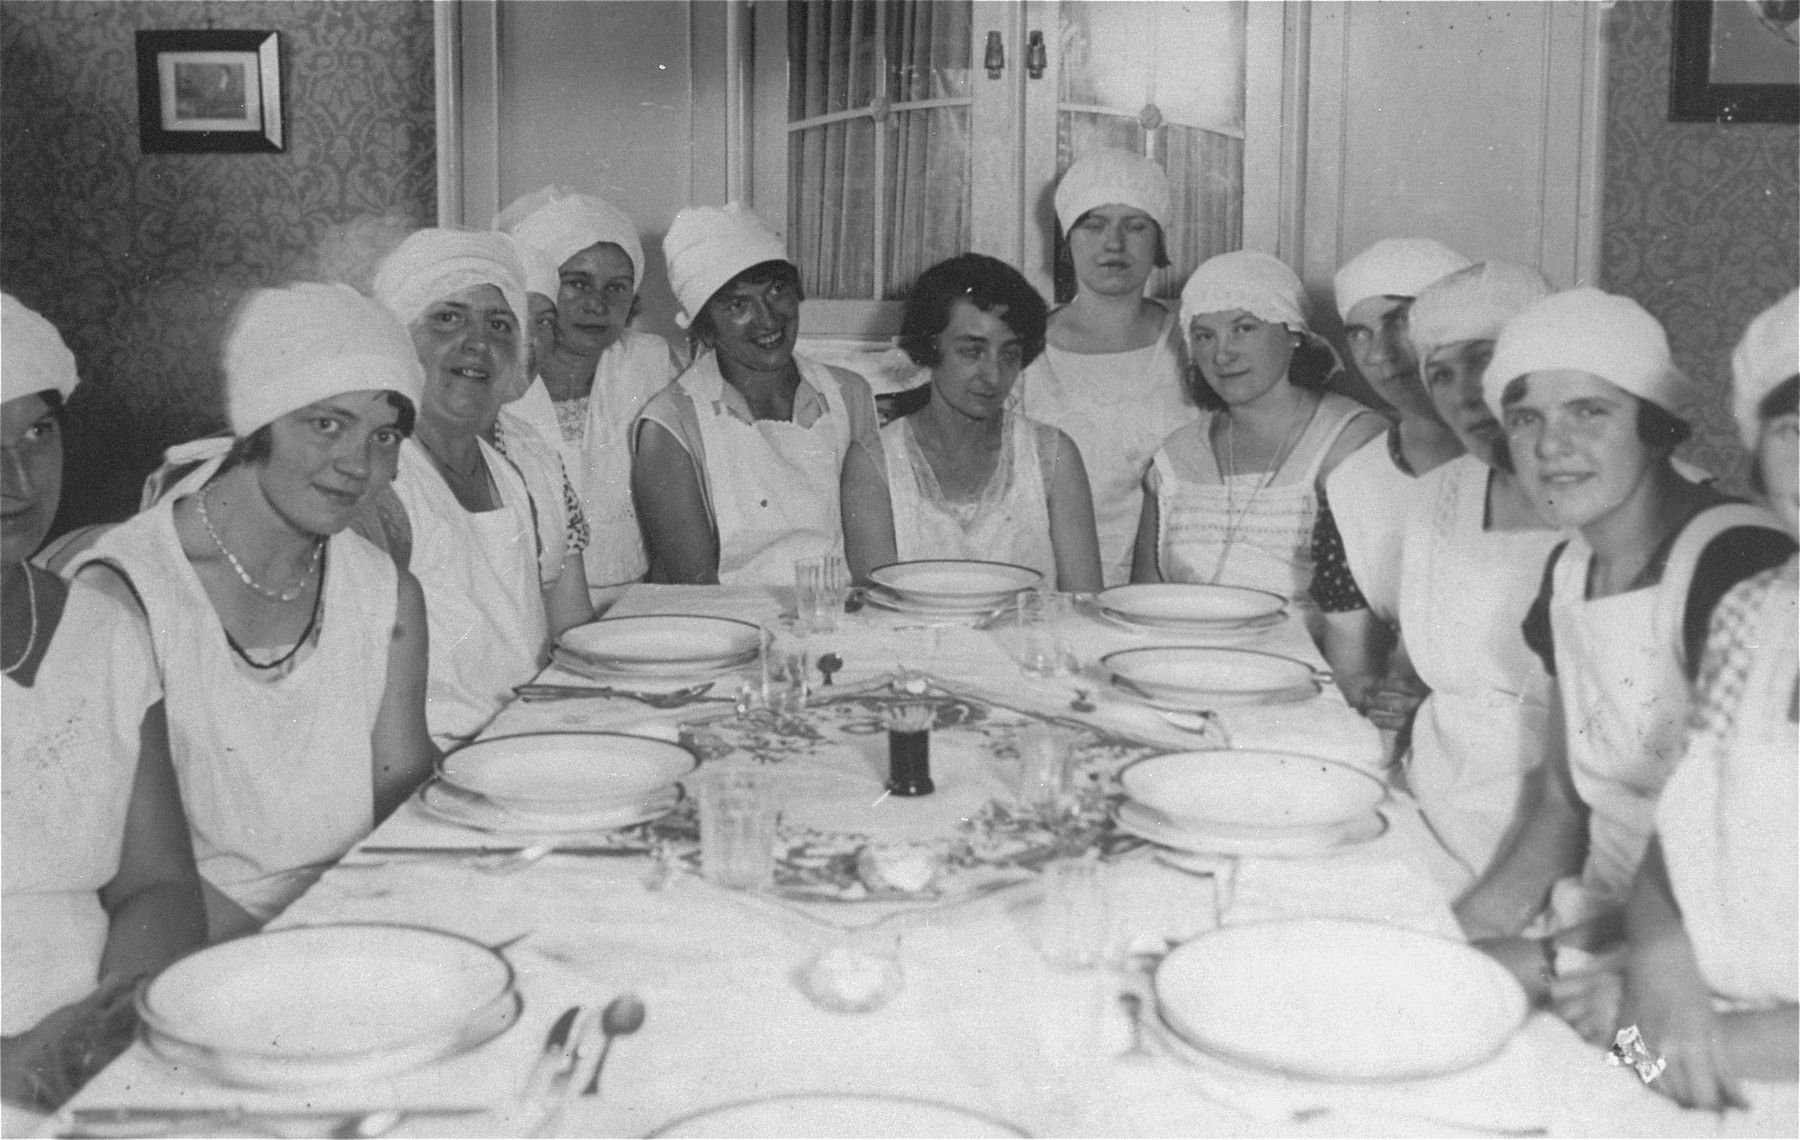 Group portrait of Jewish women in a cooking school in Vienna.    Among those pictured are members of the Fiedler and Goldstaub families.